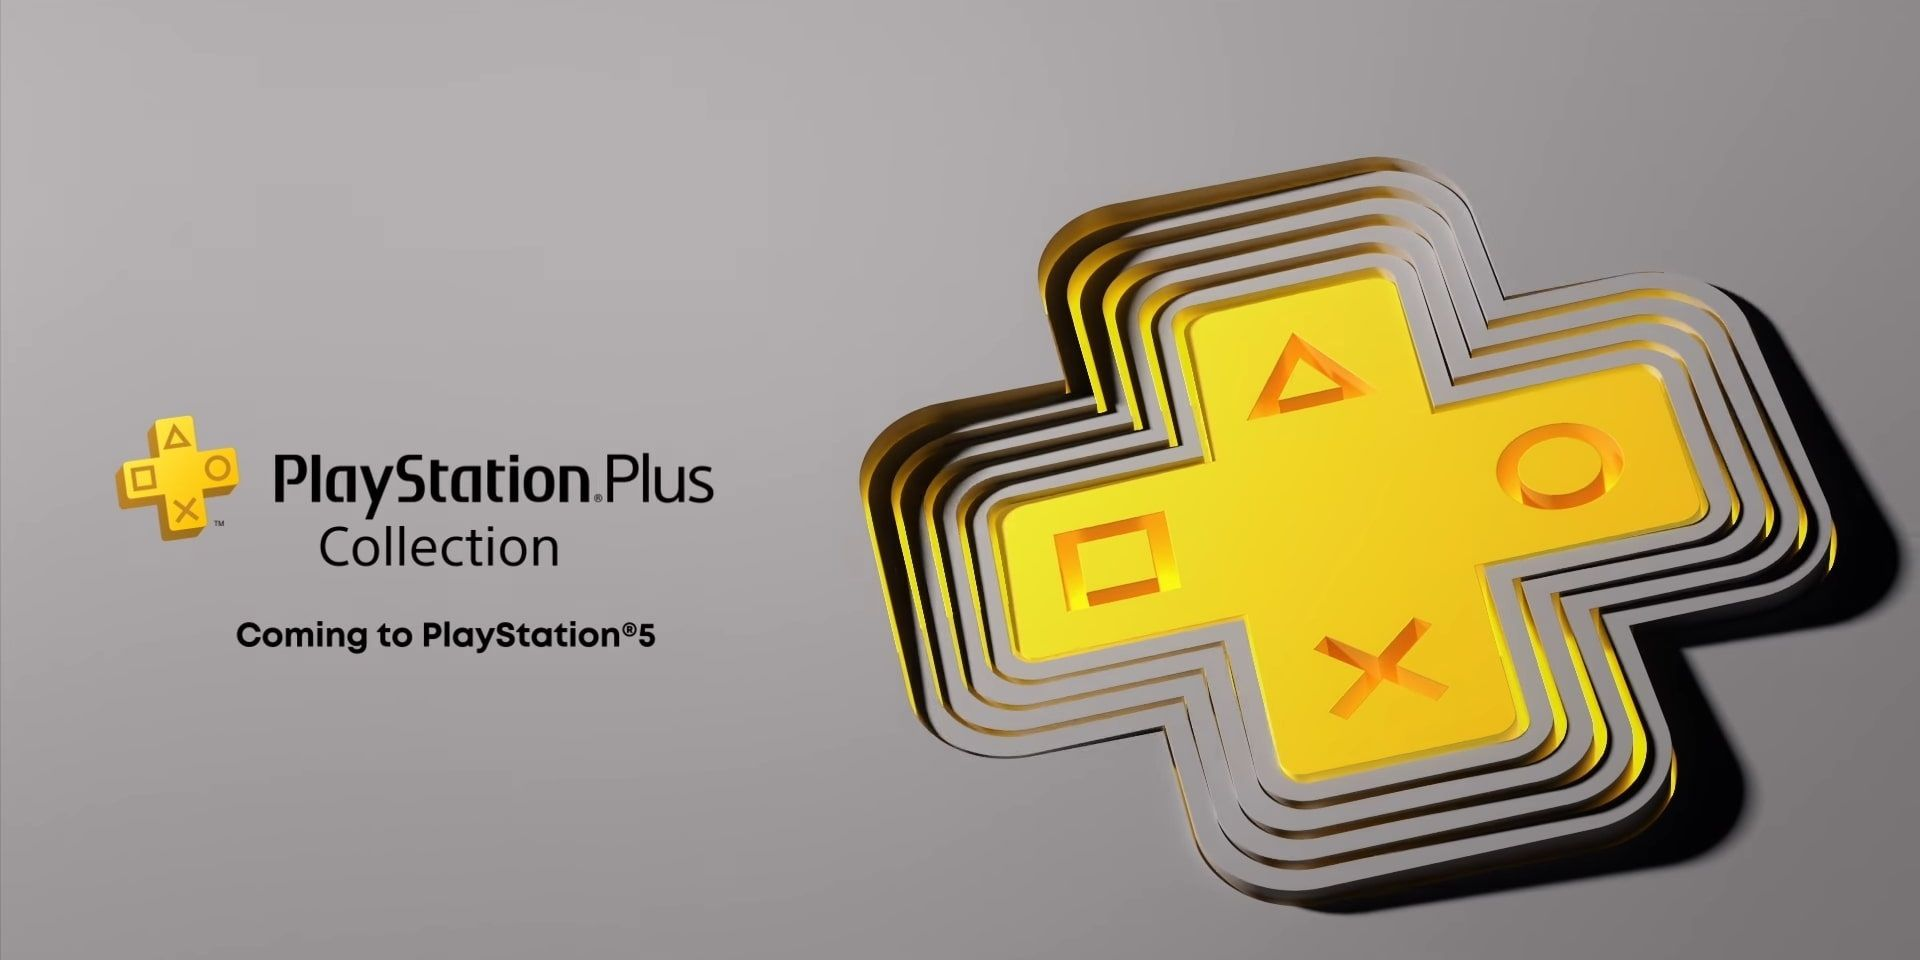 The yellow PS Plus logo shows off the new PS Plus Collection.